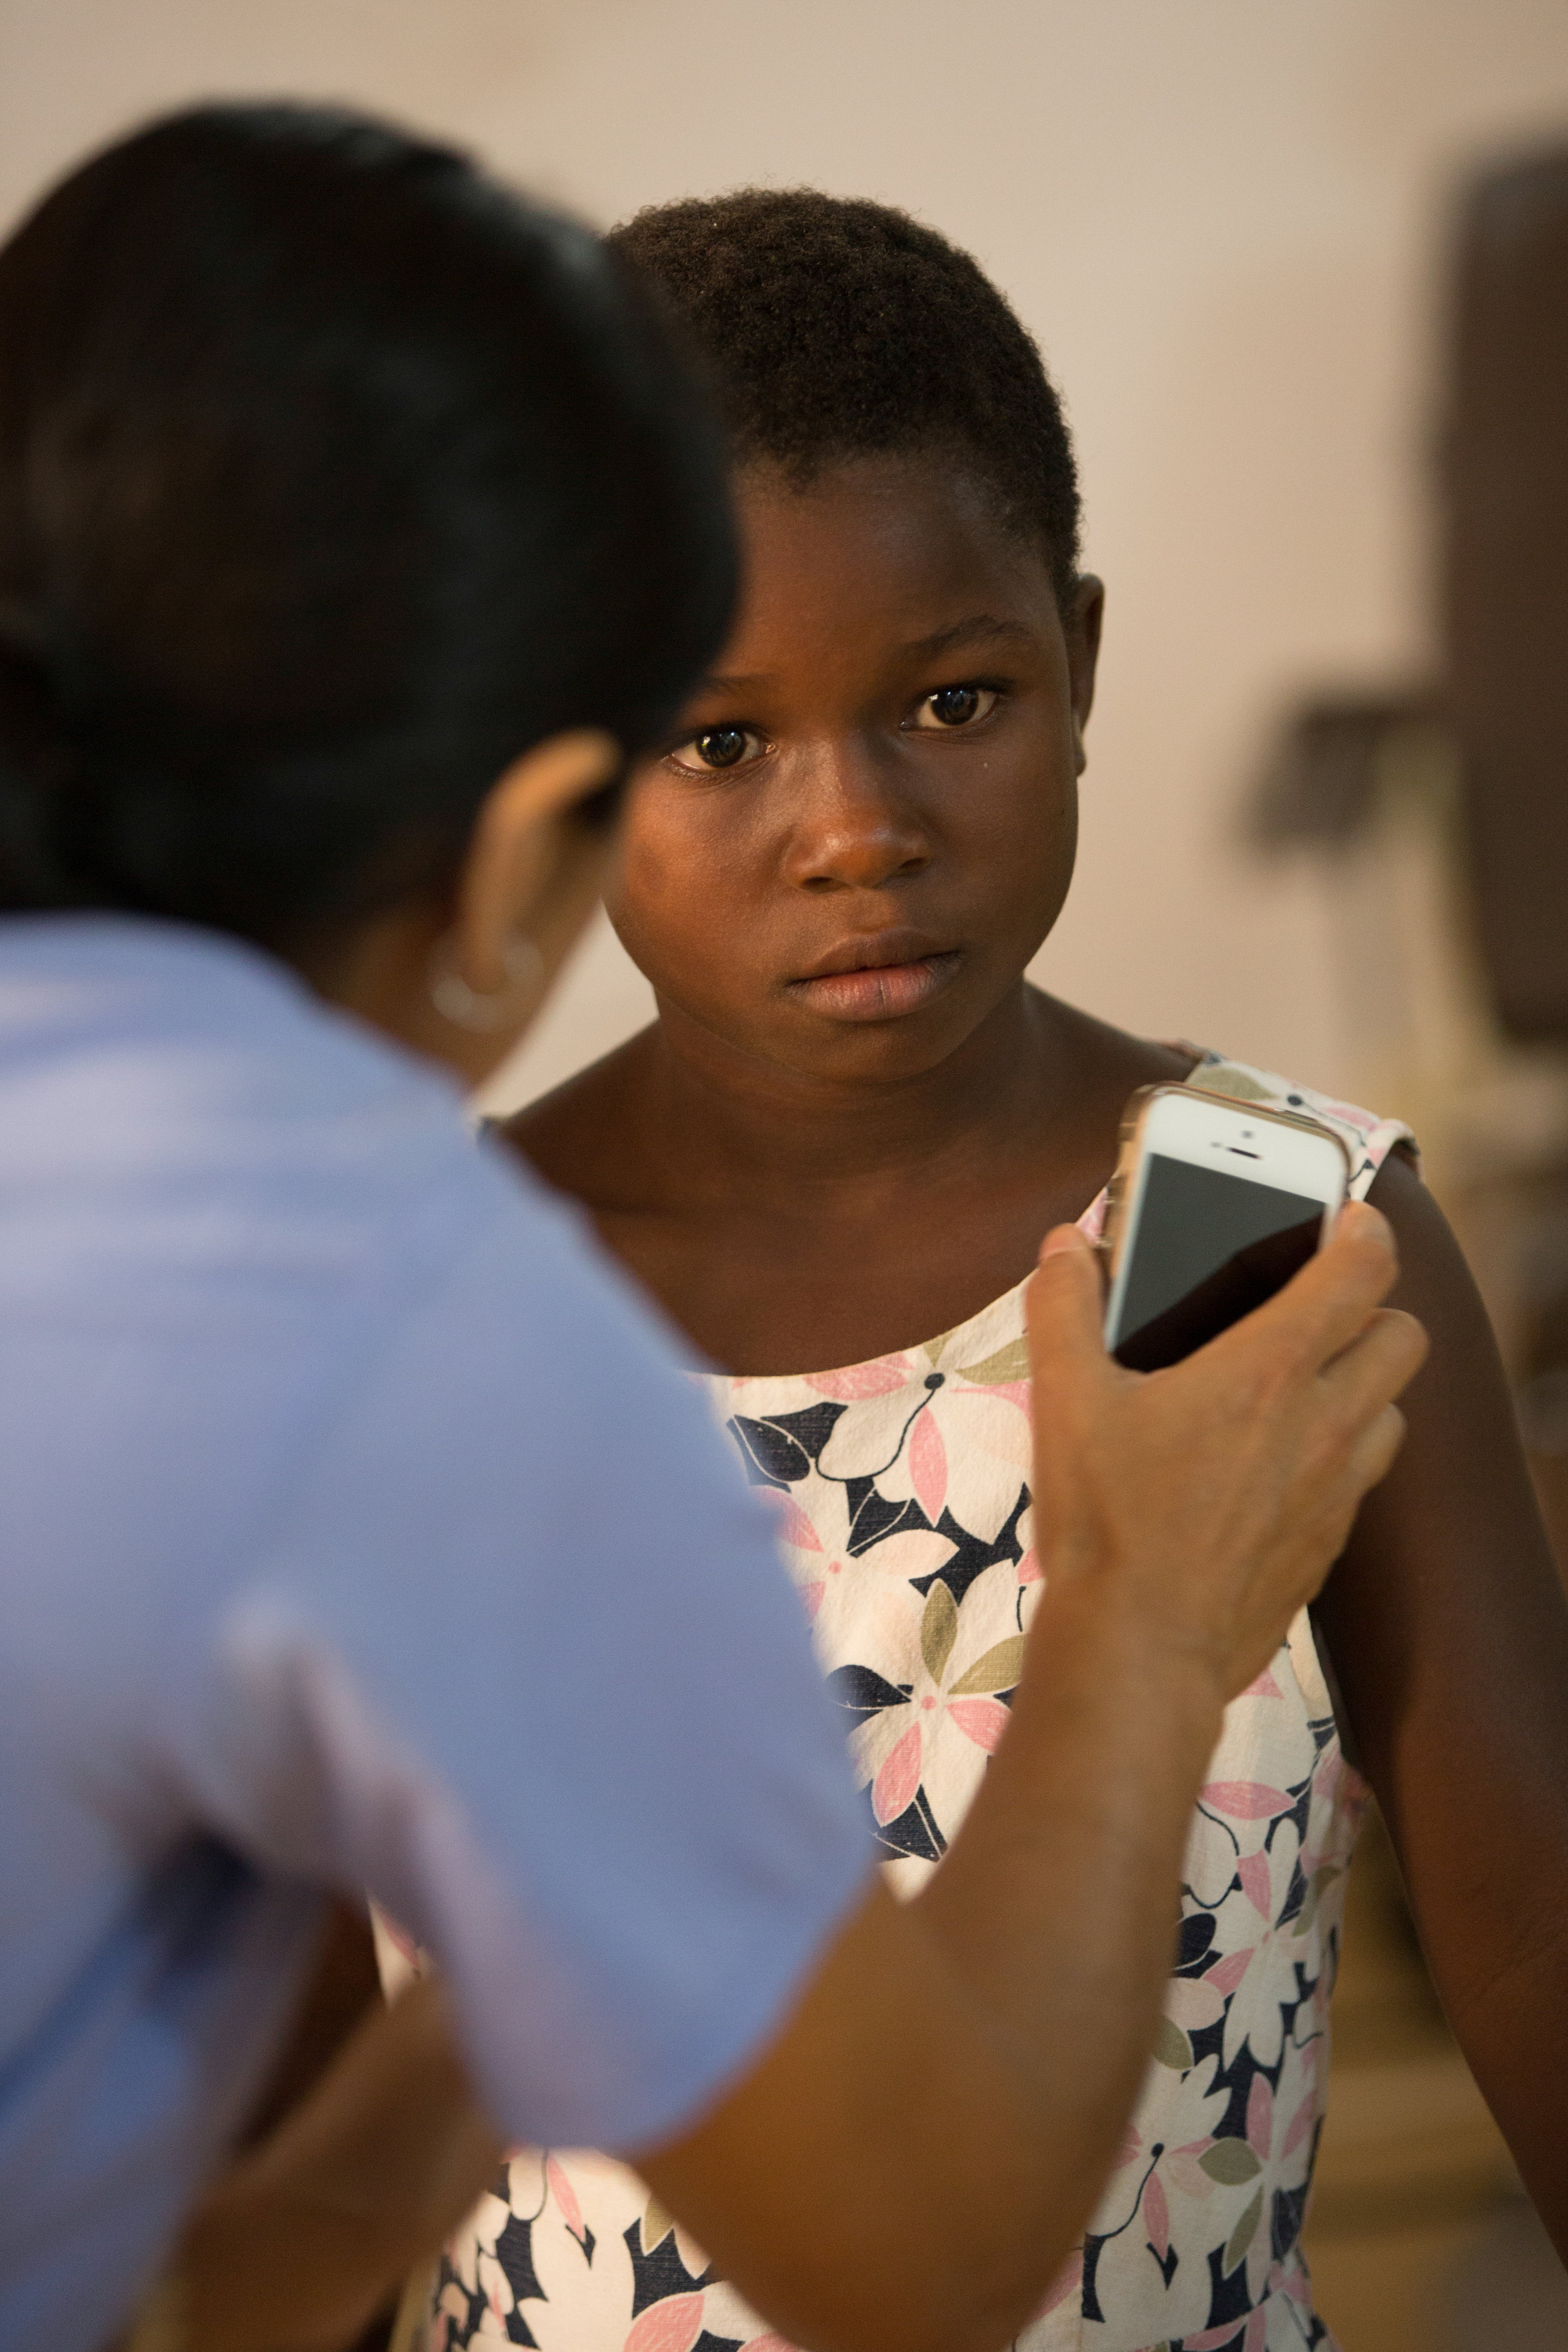 Using a phone light to perform a pupil check.